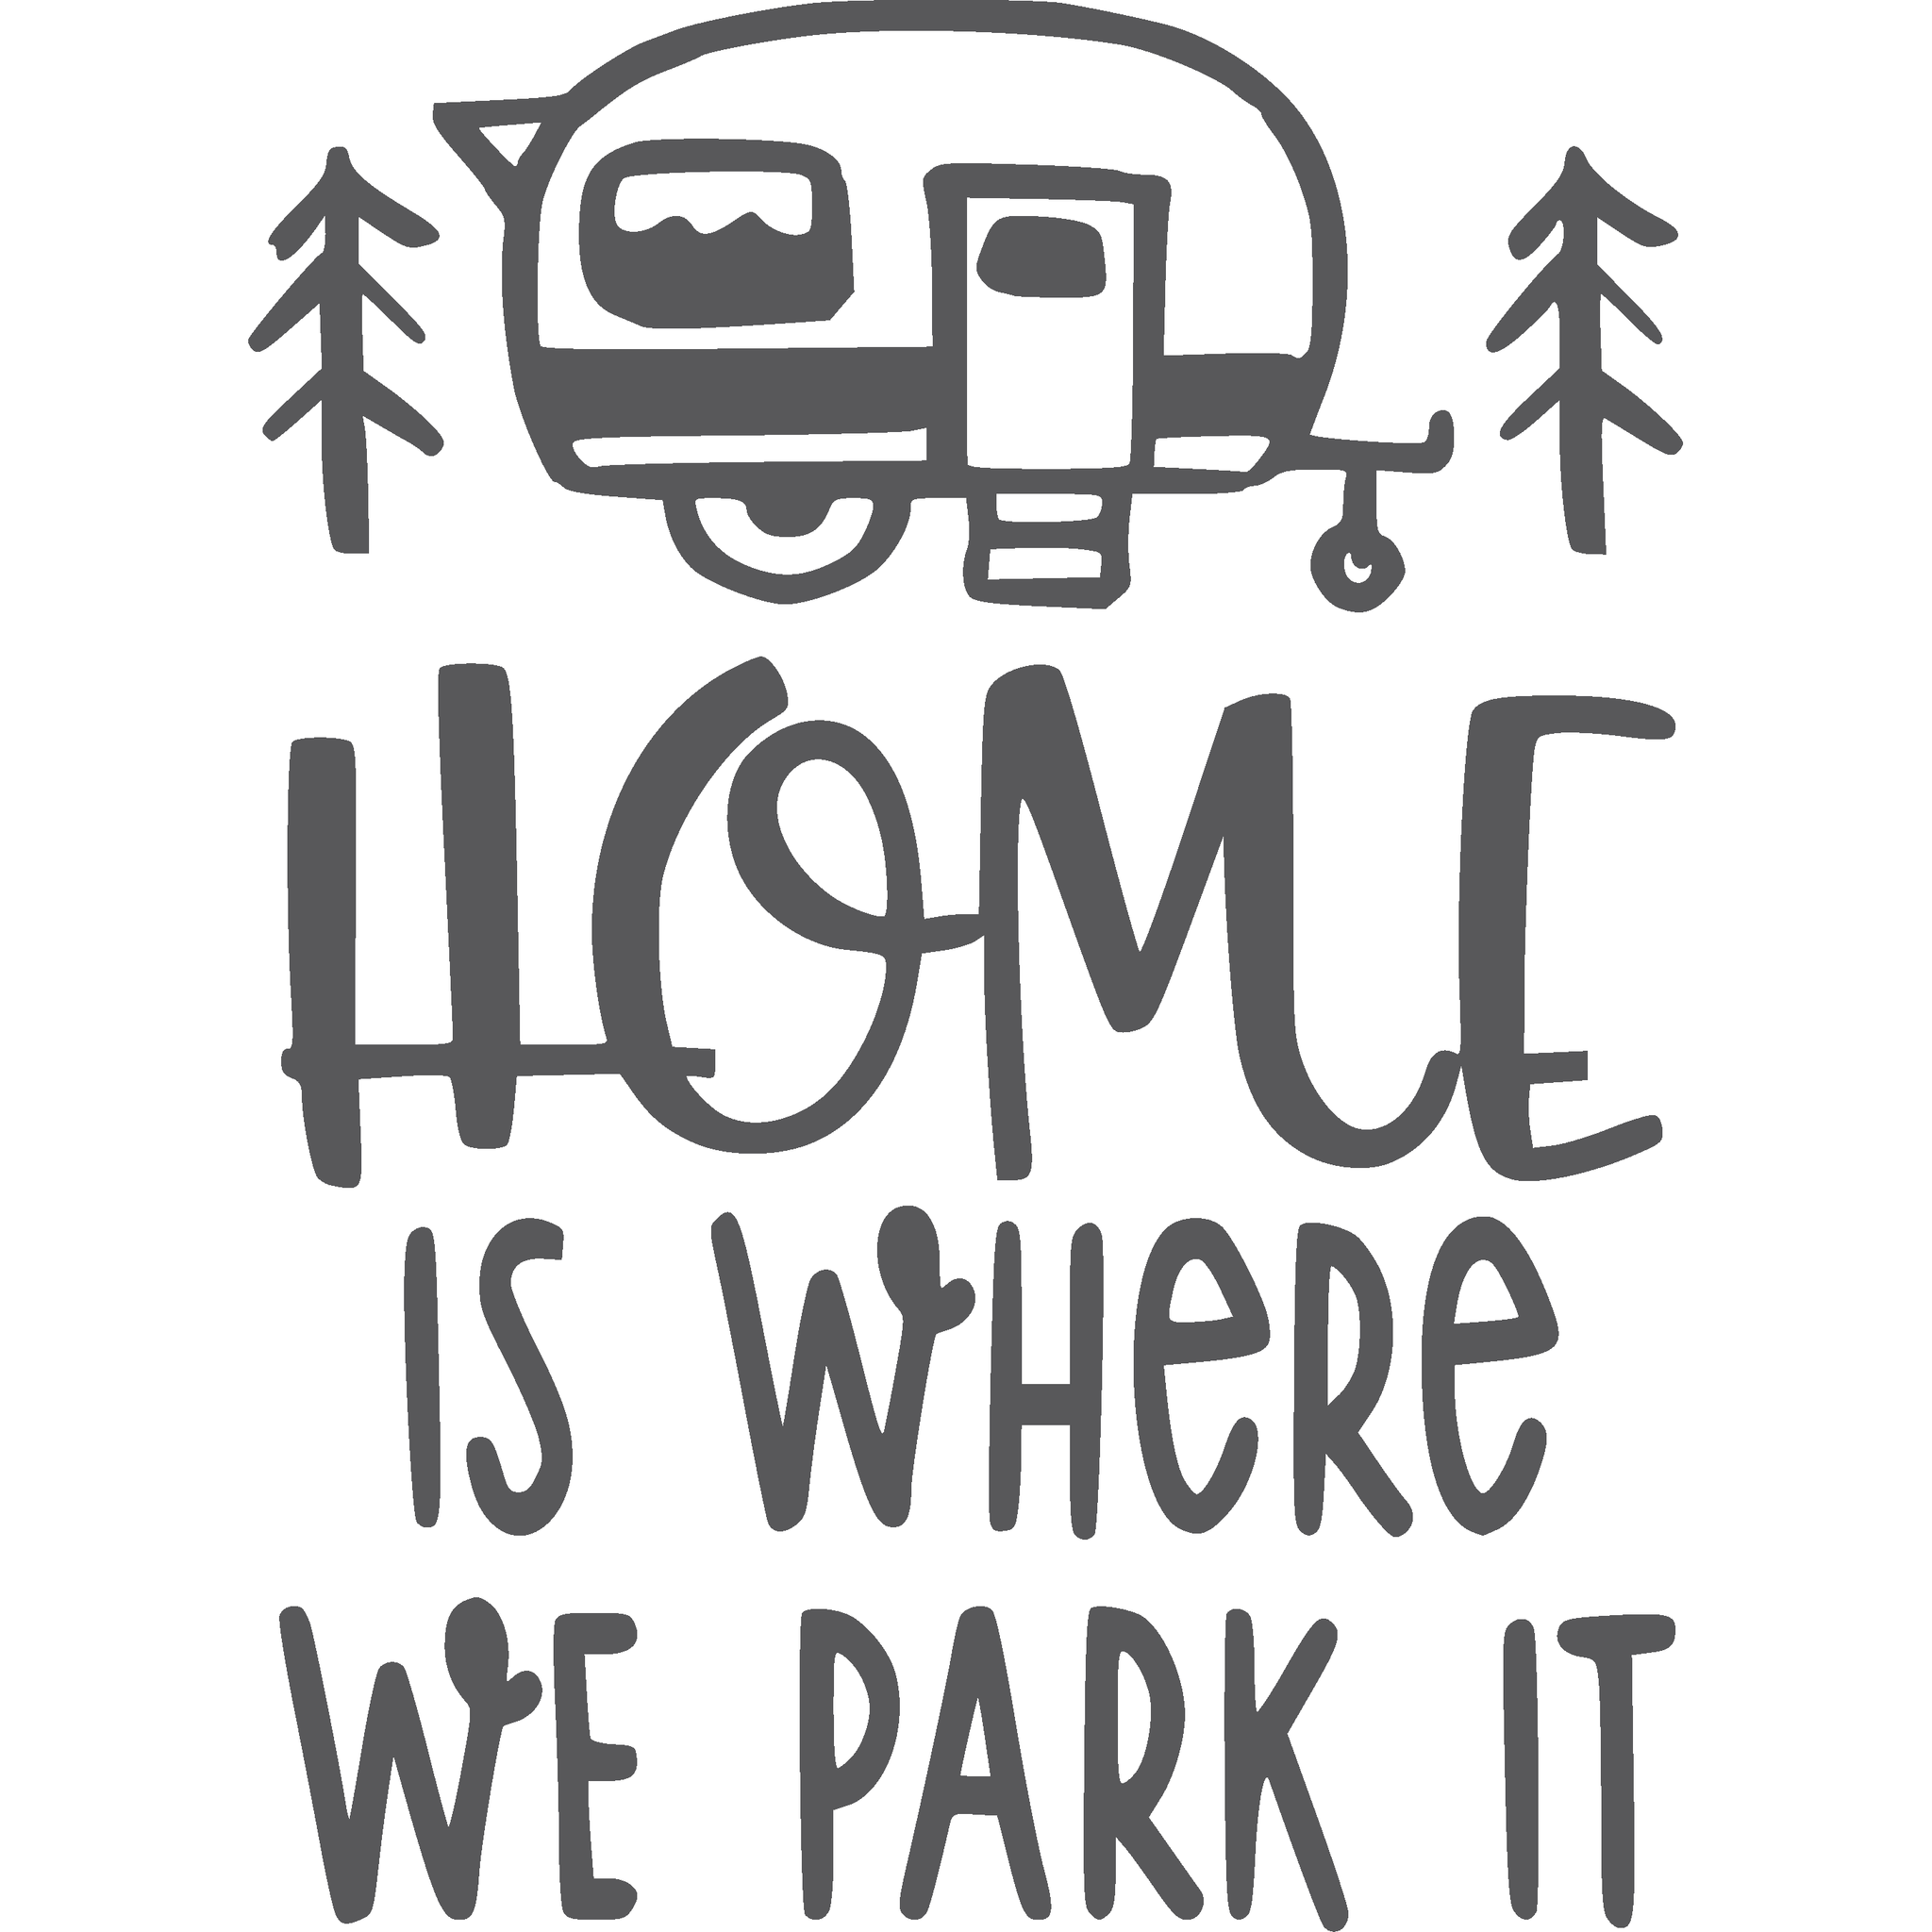 home-is-where-we-park-it-camping-rv-vinyl-graphic-decal-vinyl-graphic-decal-shopvinyldesigncom-2_1024x1024@2x